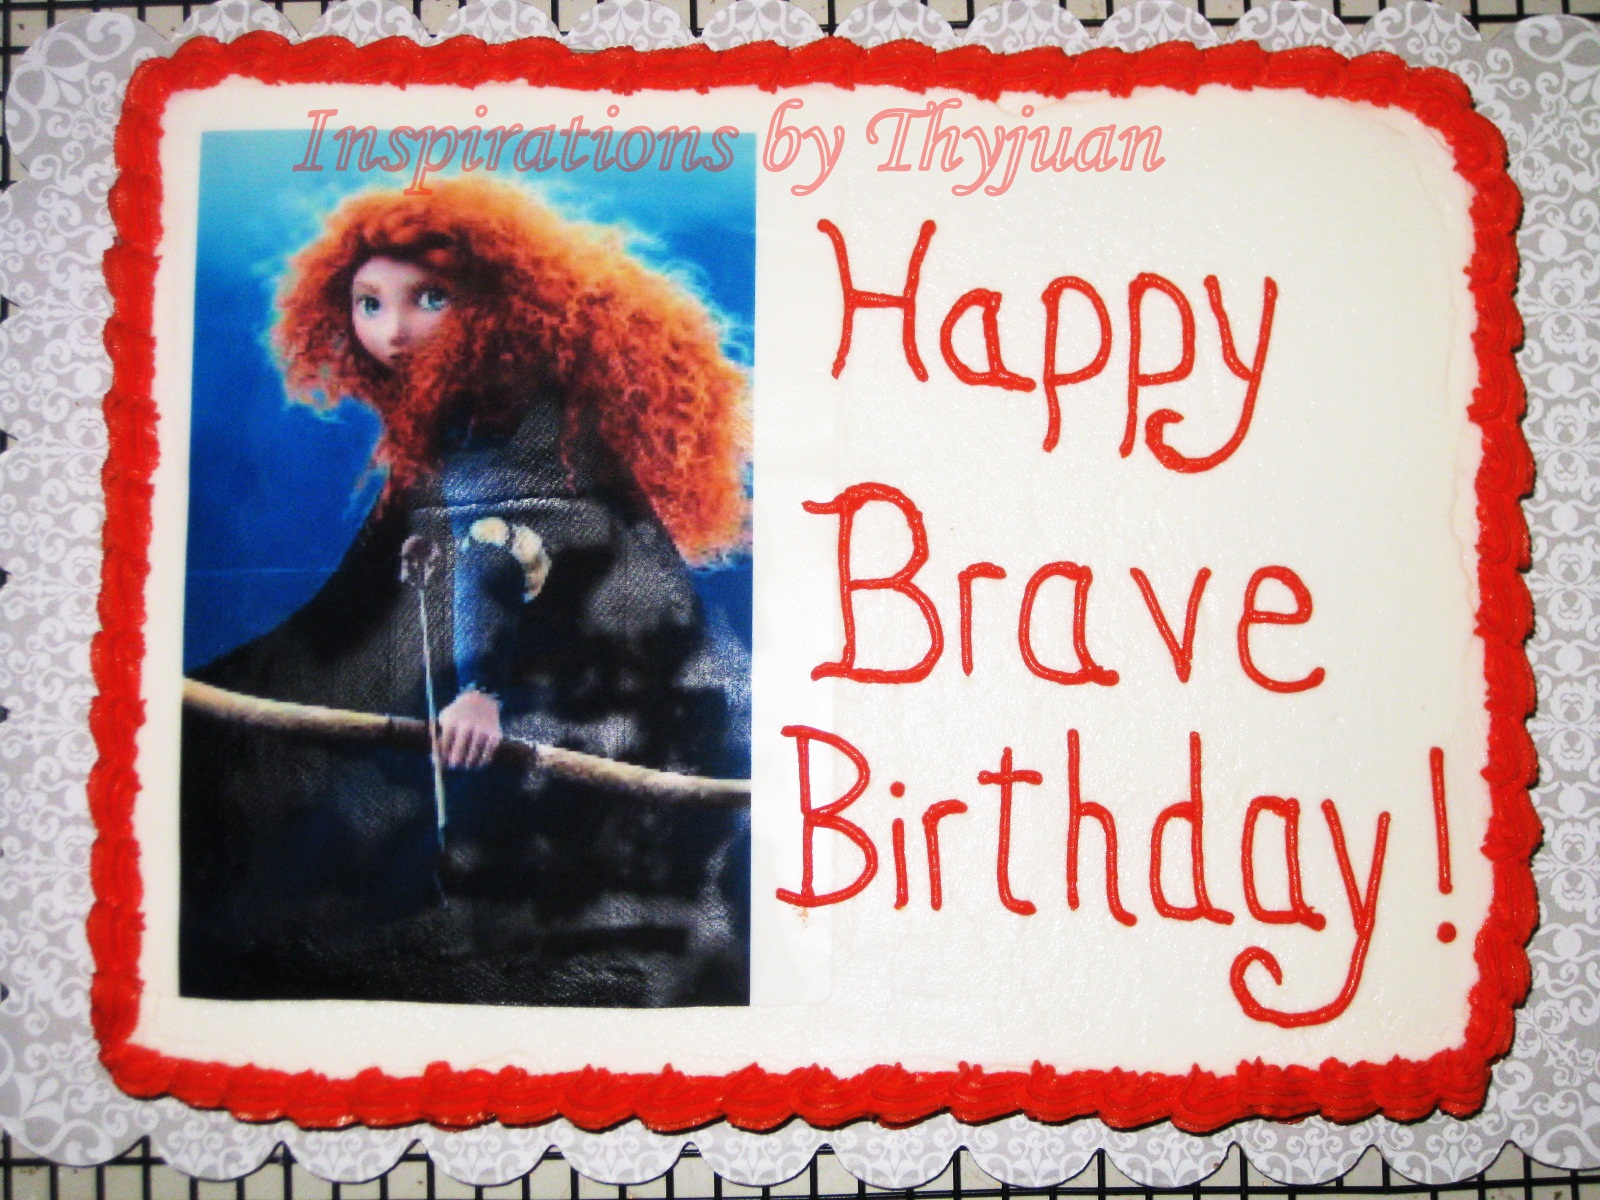 Seen the movie brave and wanted a brave birthday party